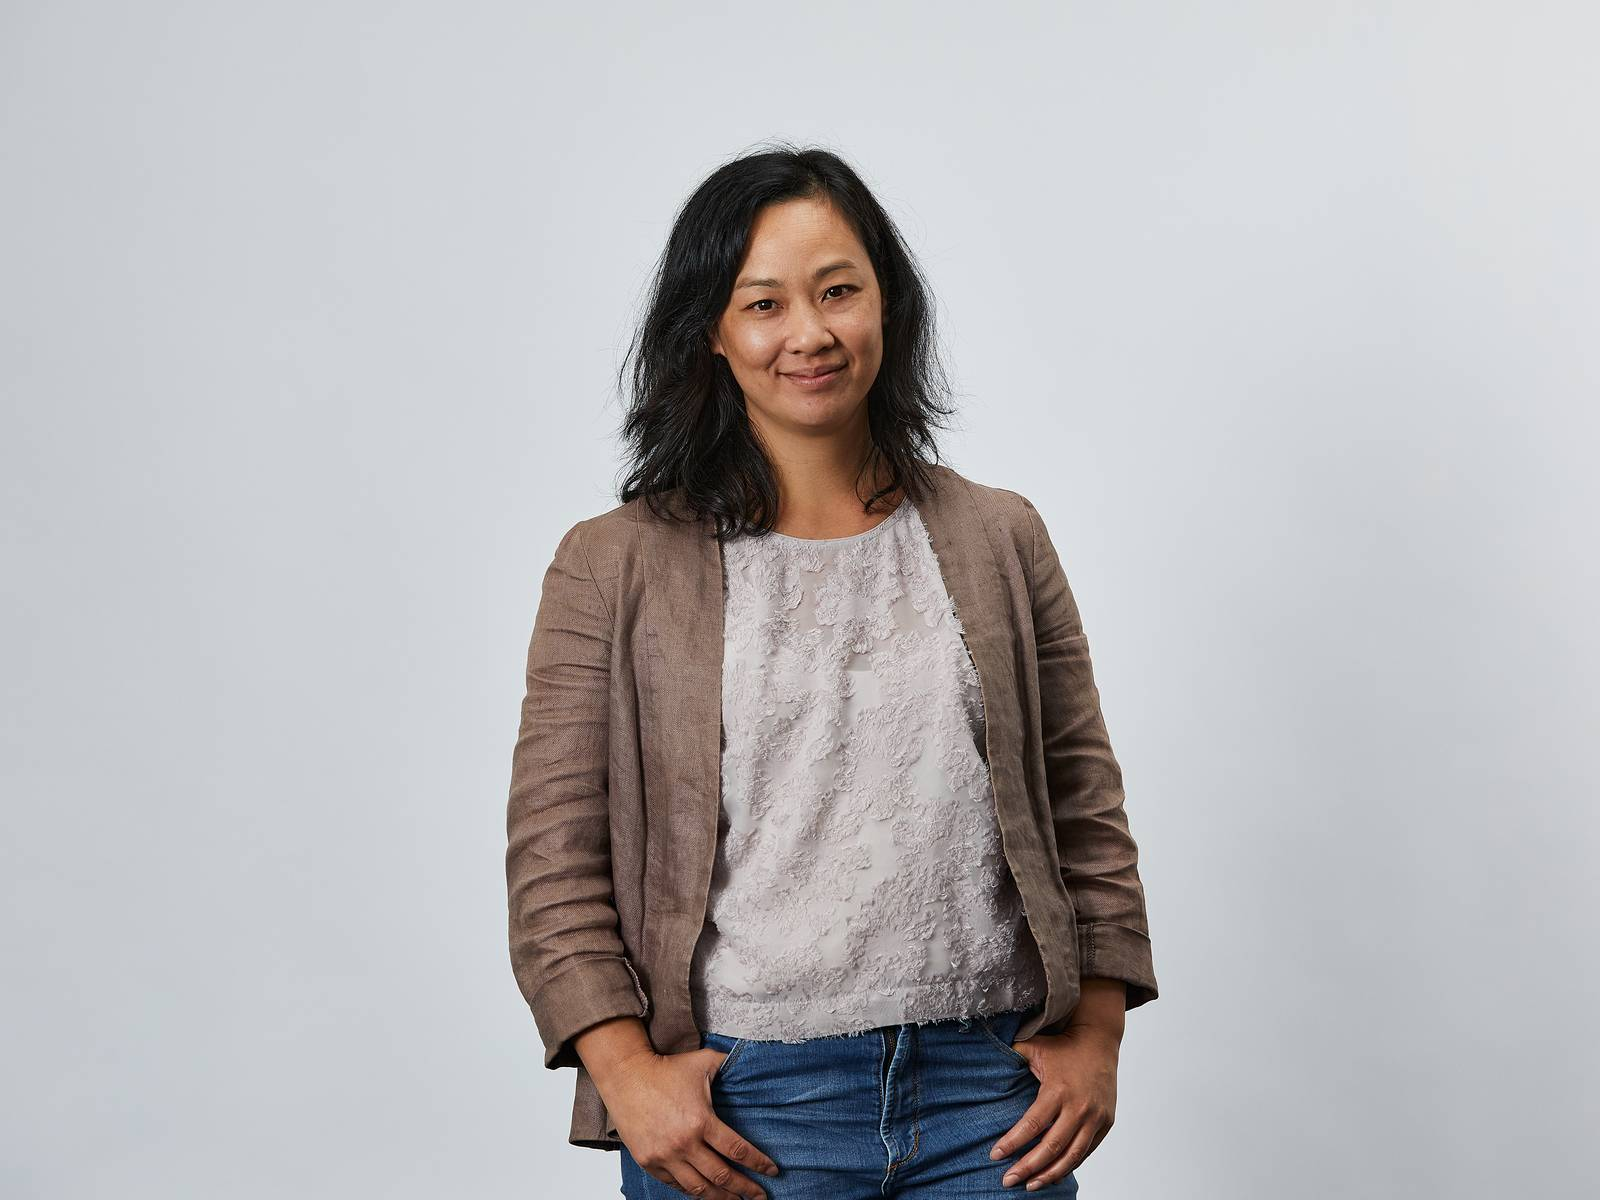 A profile image of Stephanie Kan